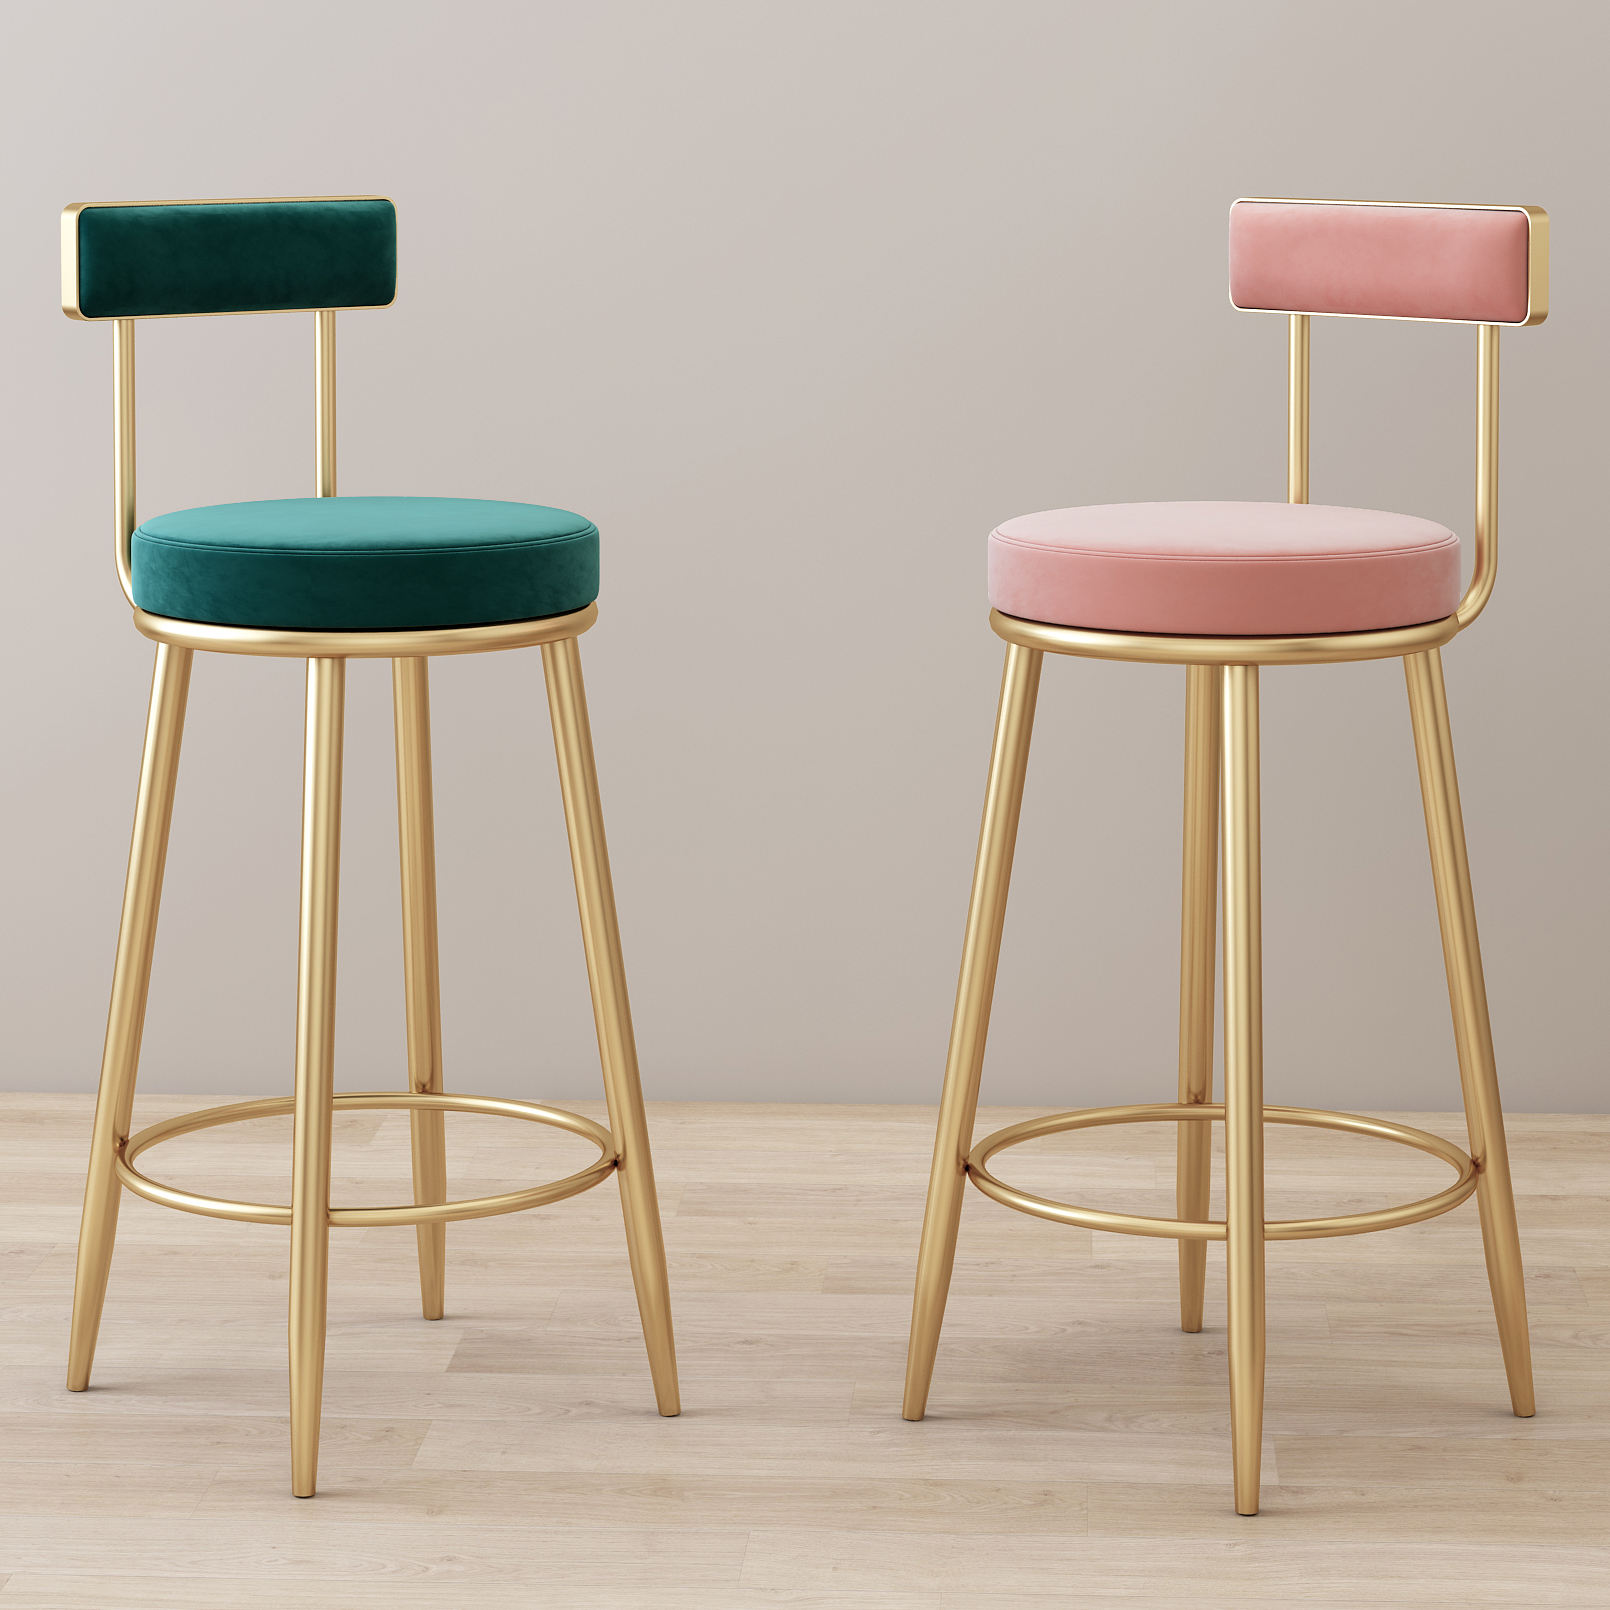 Bar Stools New Home Tall Nordic Metal Luxury Gold Velvet Kitchen Leather High Modern Chair Cheap Furniture Bar Stools With Back